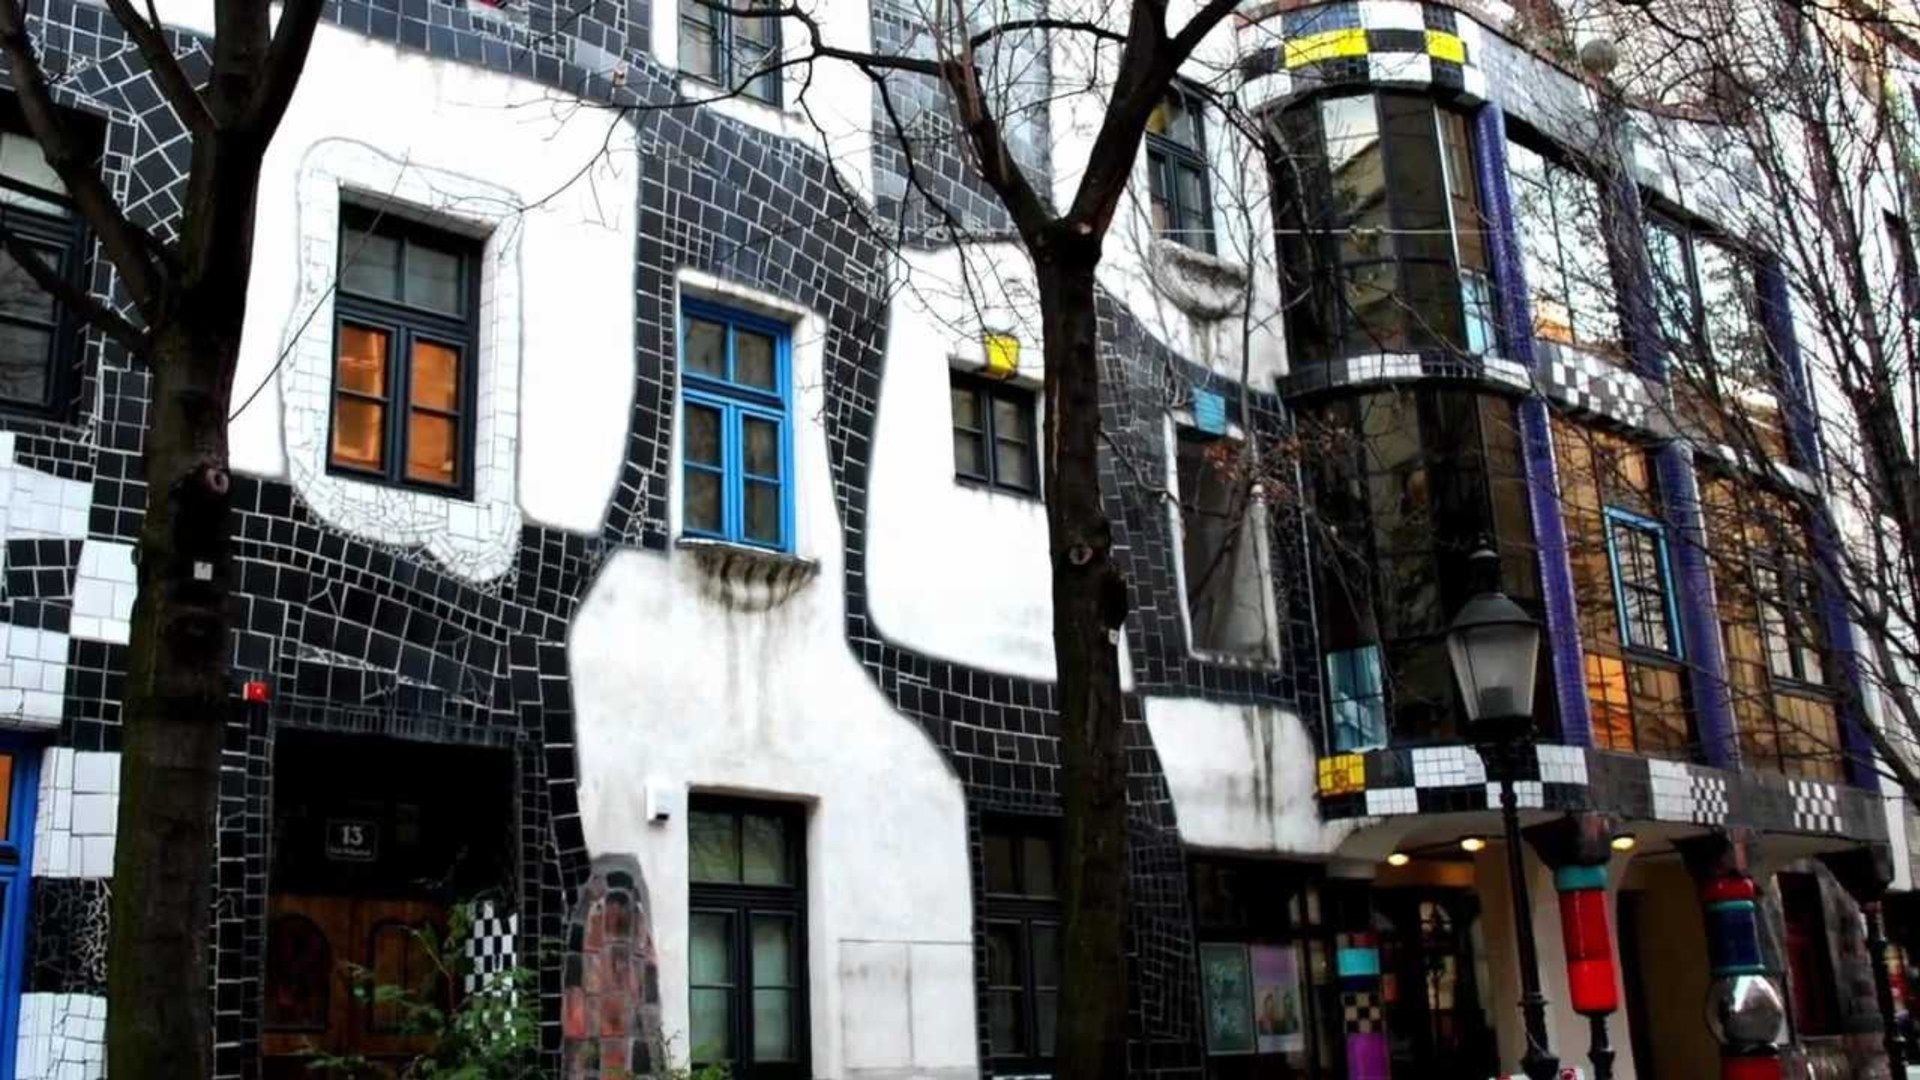 Bettering The World One Multi-Colored Building At A Time - Hundertwasser's Vienna